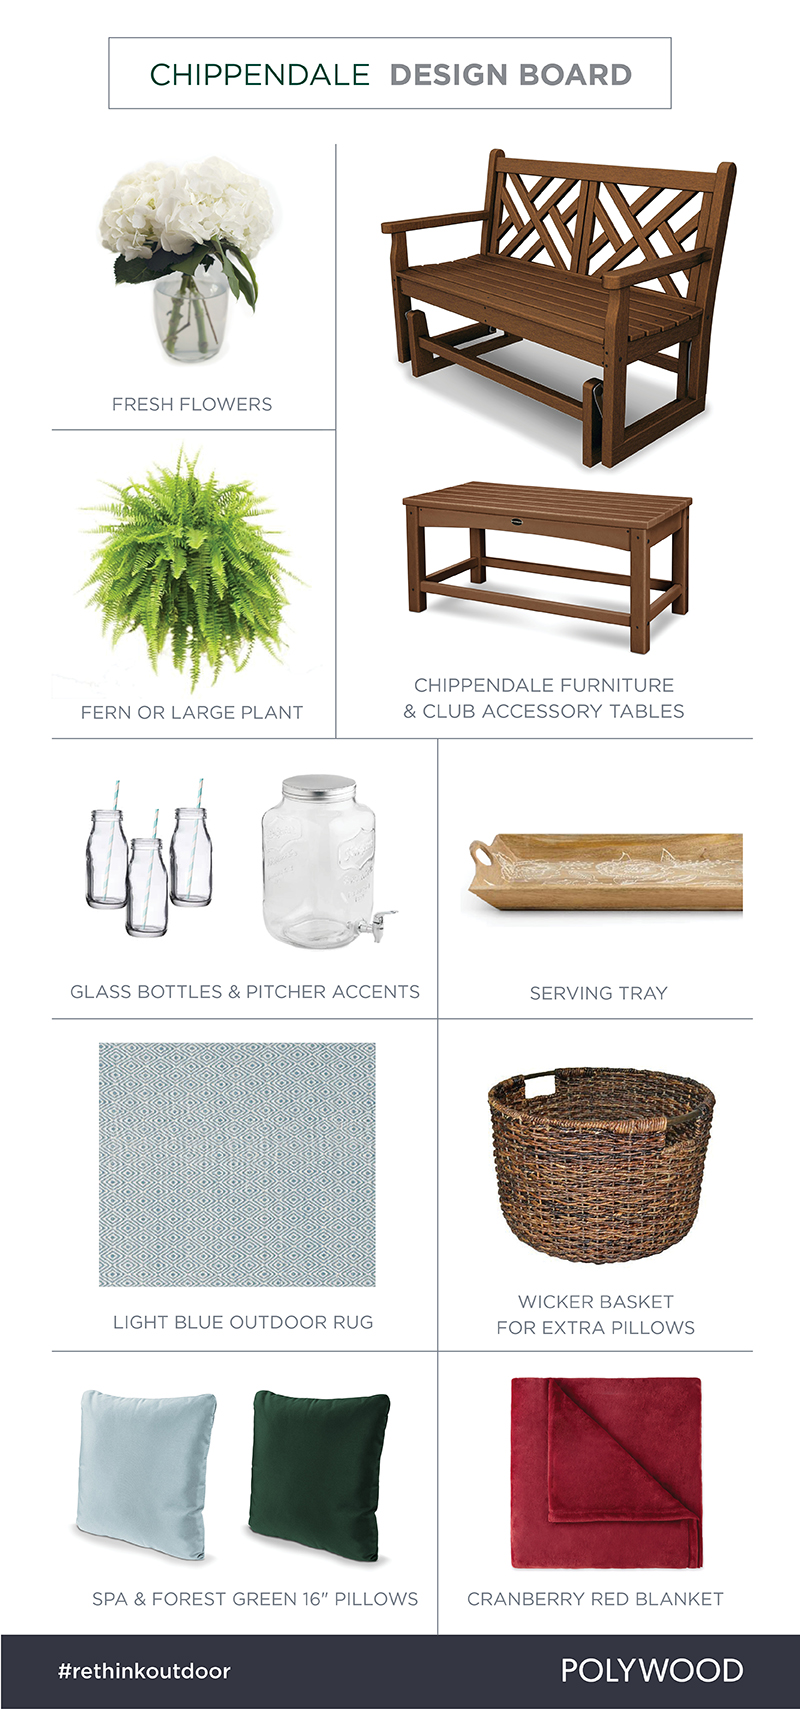 Chippendale-PorchMakeover-DesignBoard